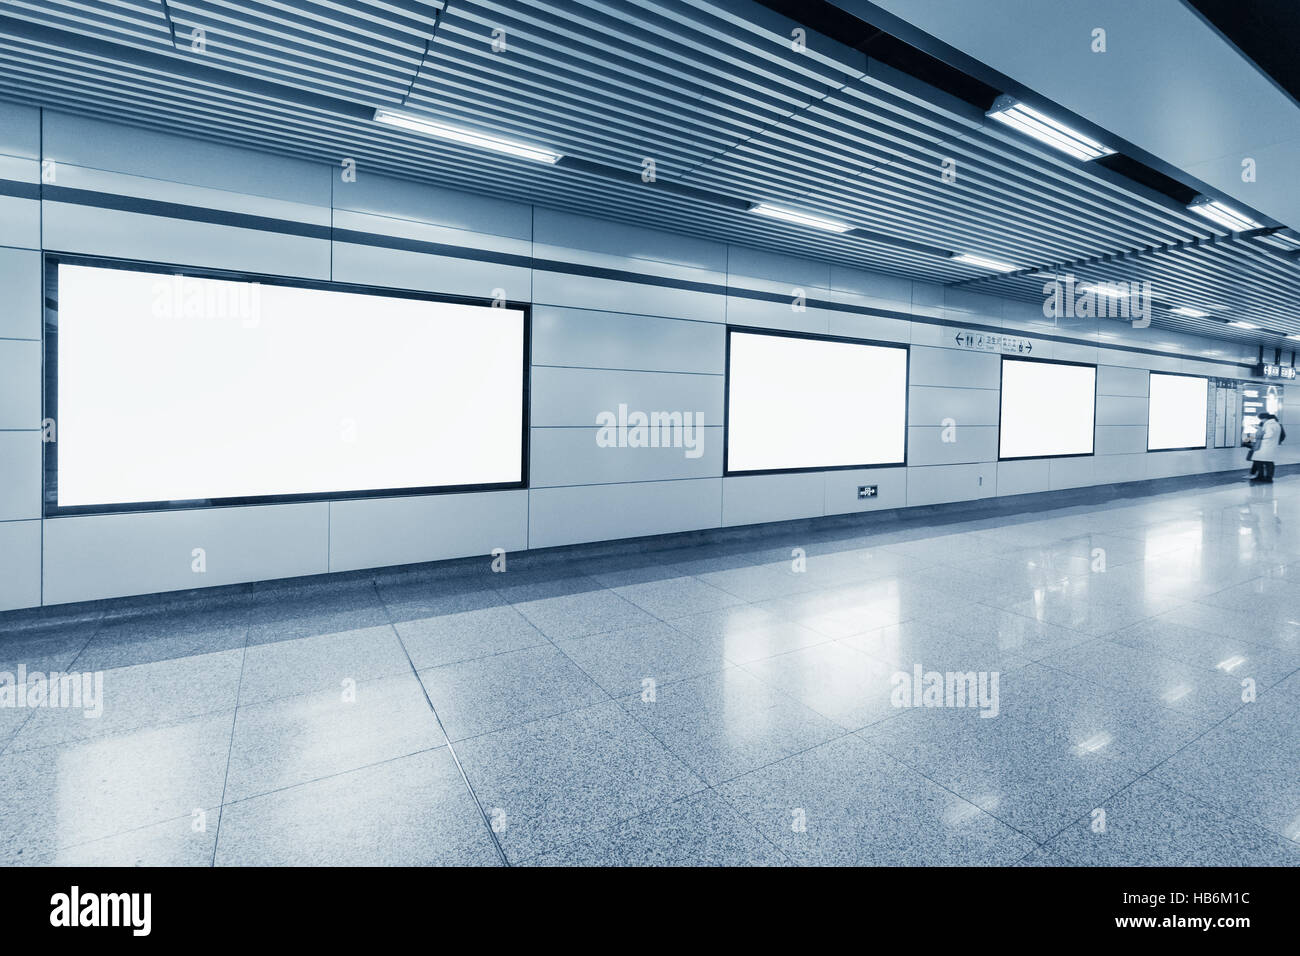 blank billboard in metro station - Stock Image